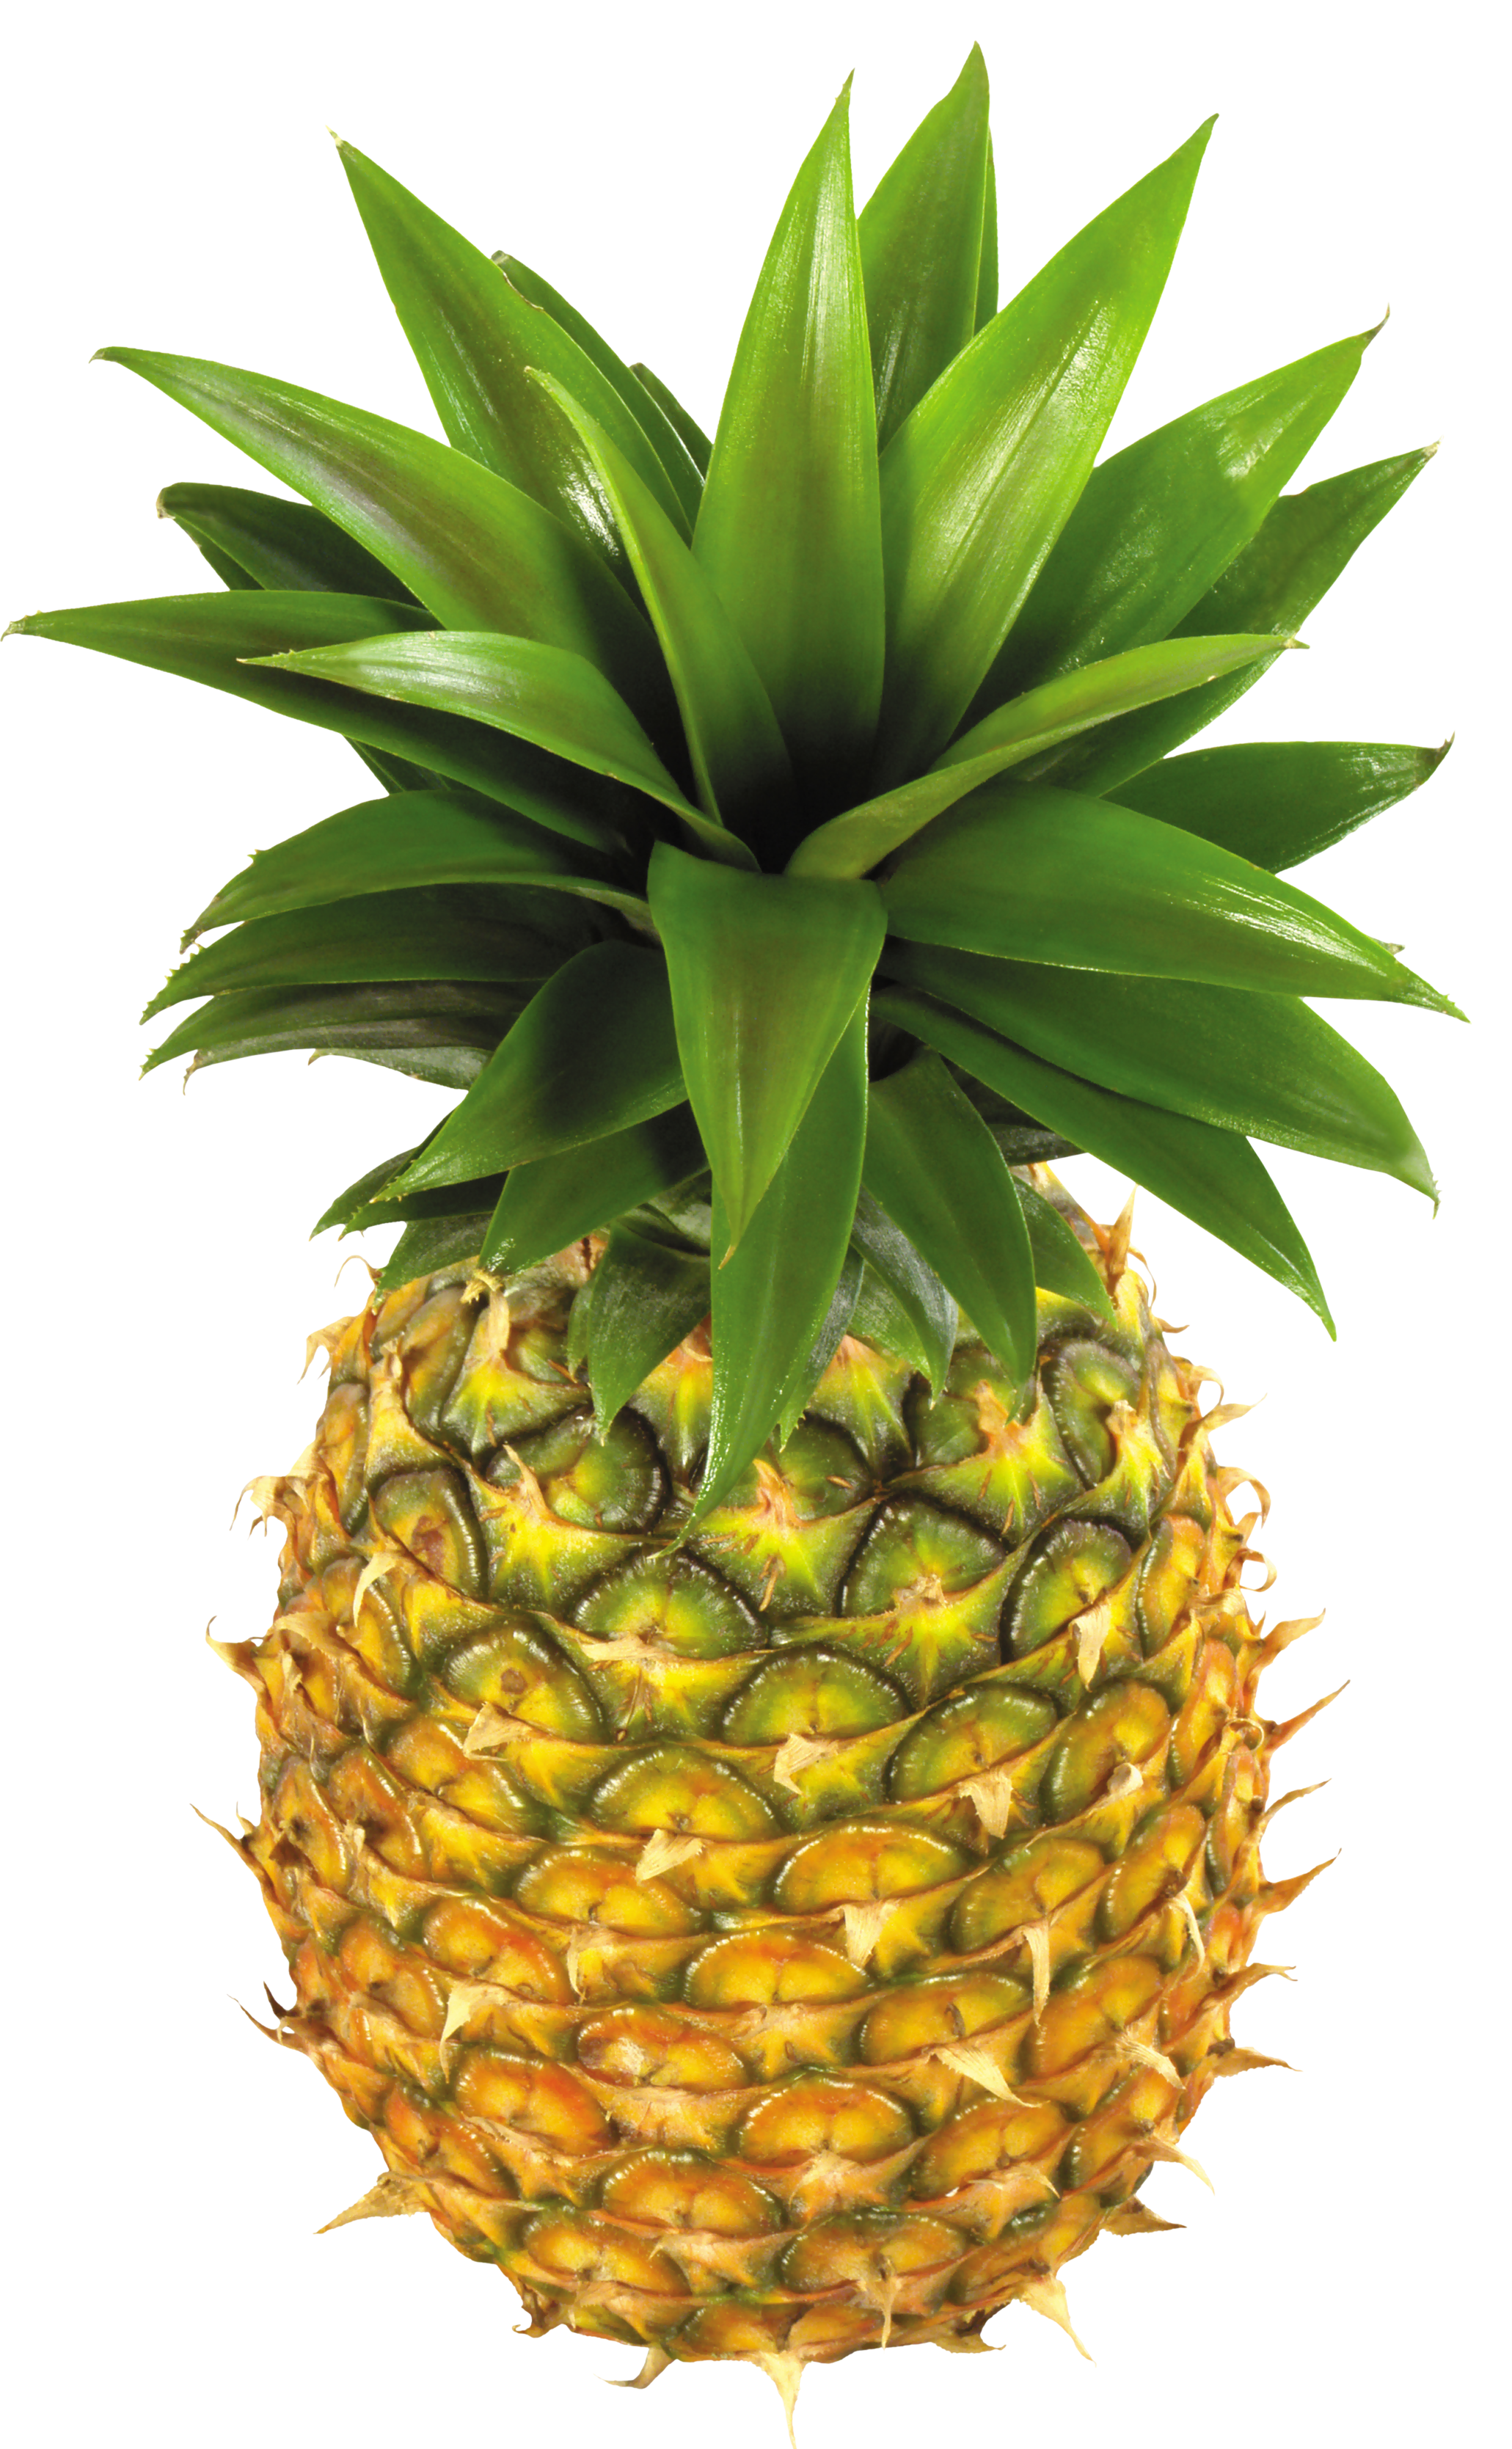 Pineapple clip art free. Win clipart nature